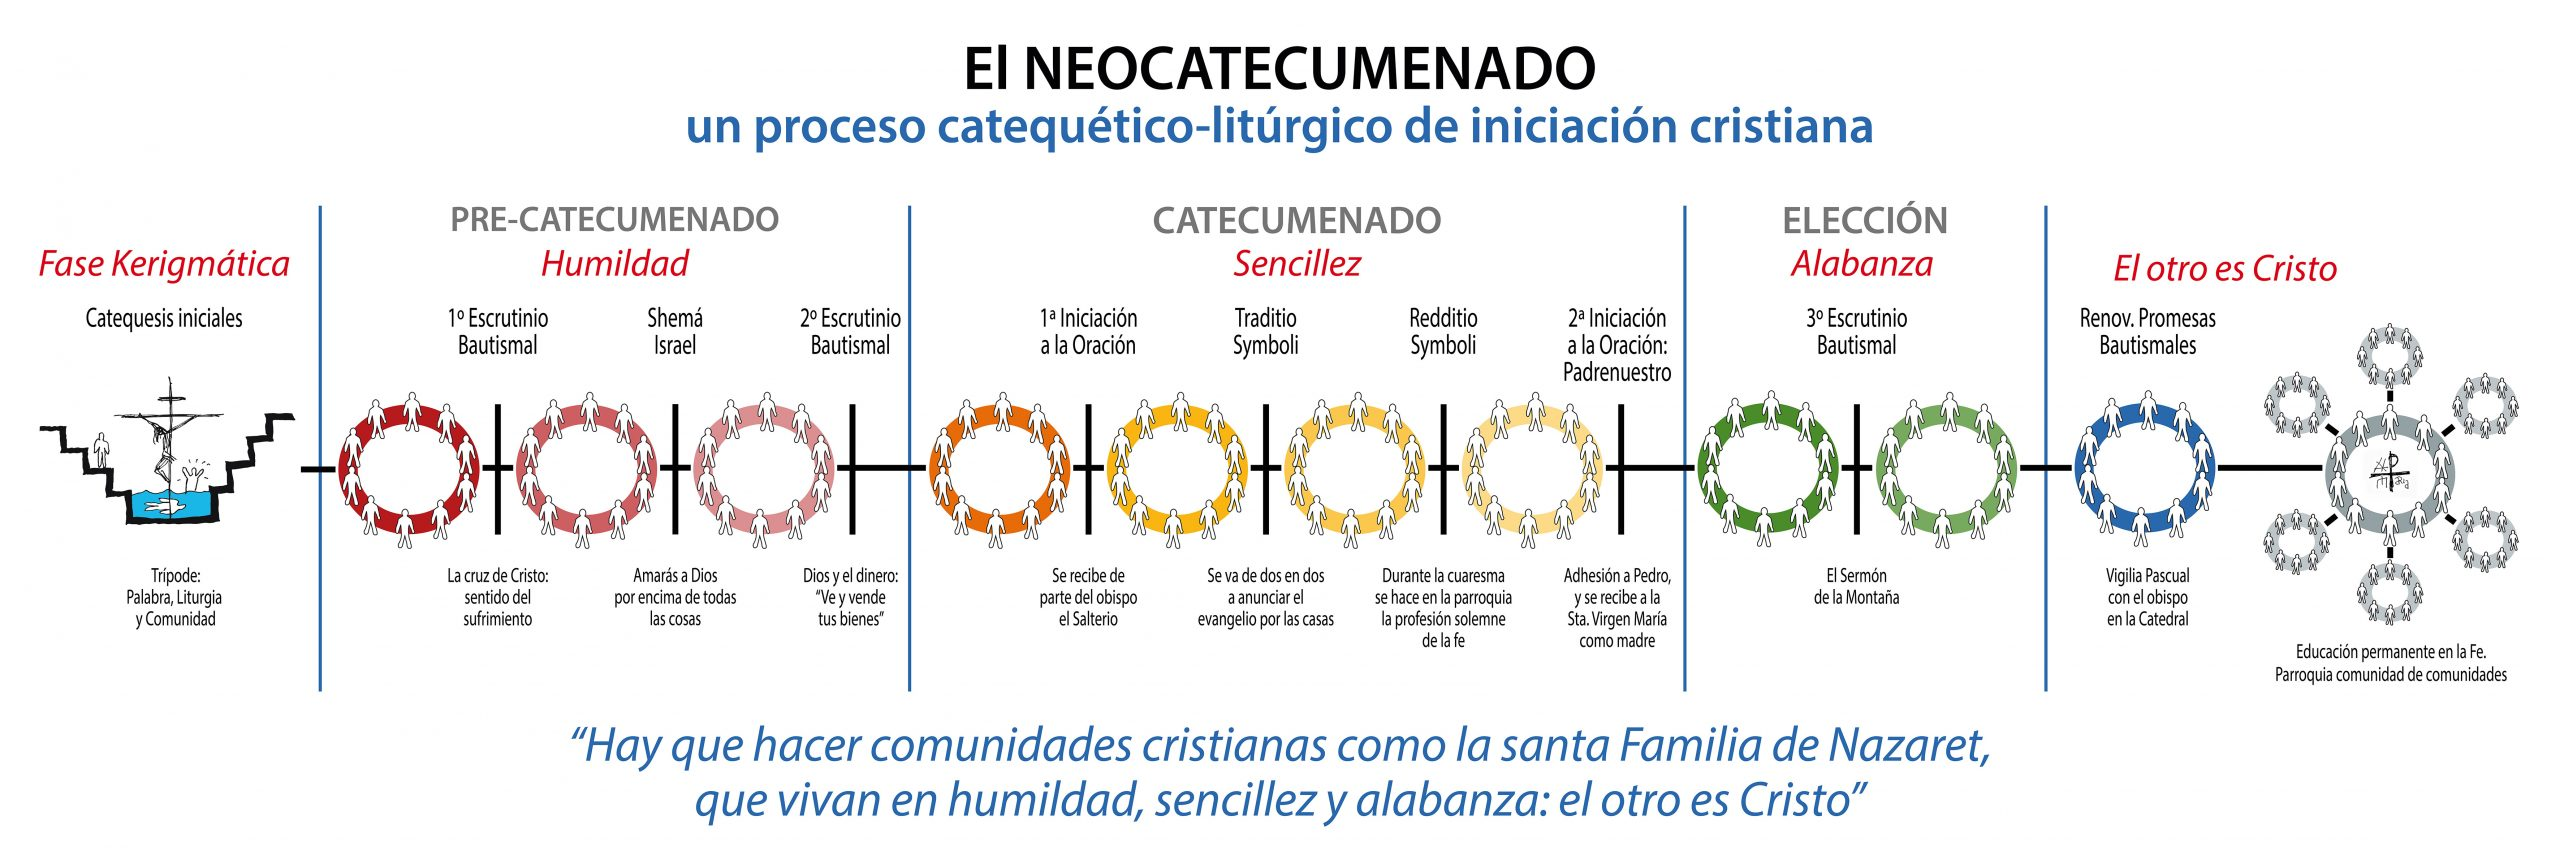 Estapas del Camino Neocatecumenal